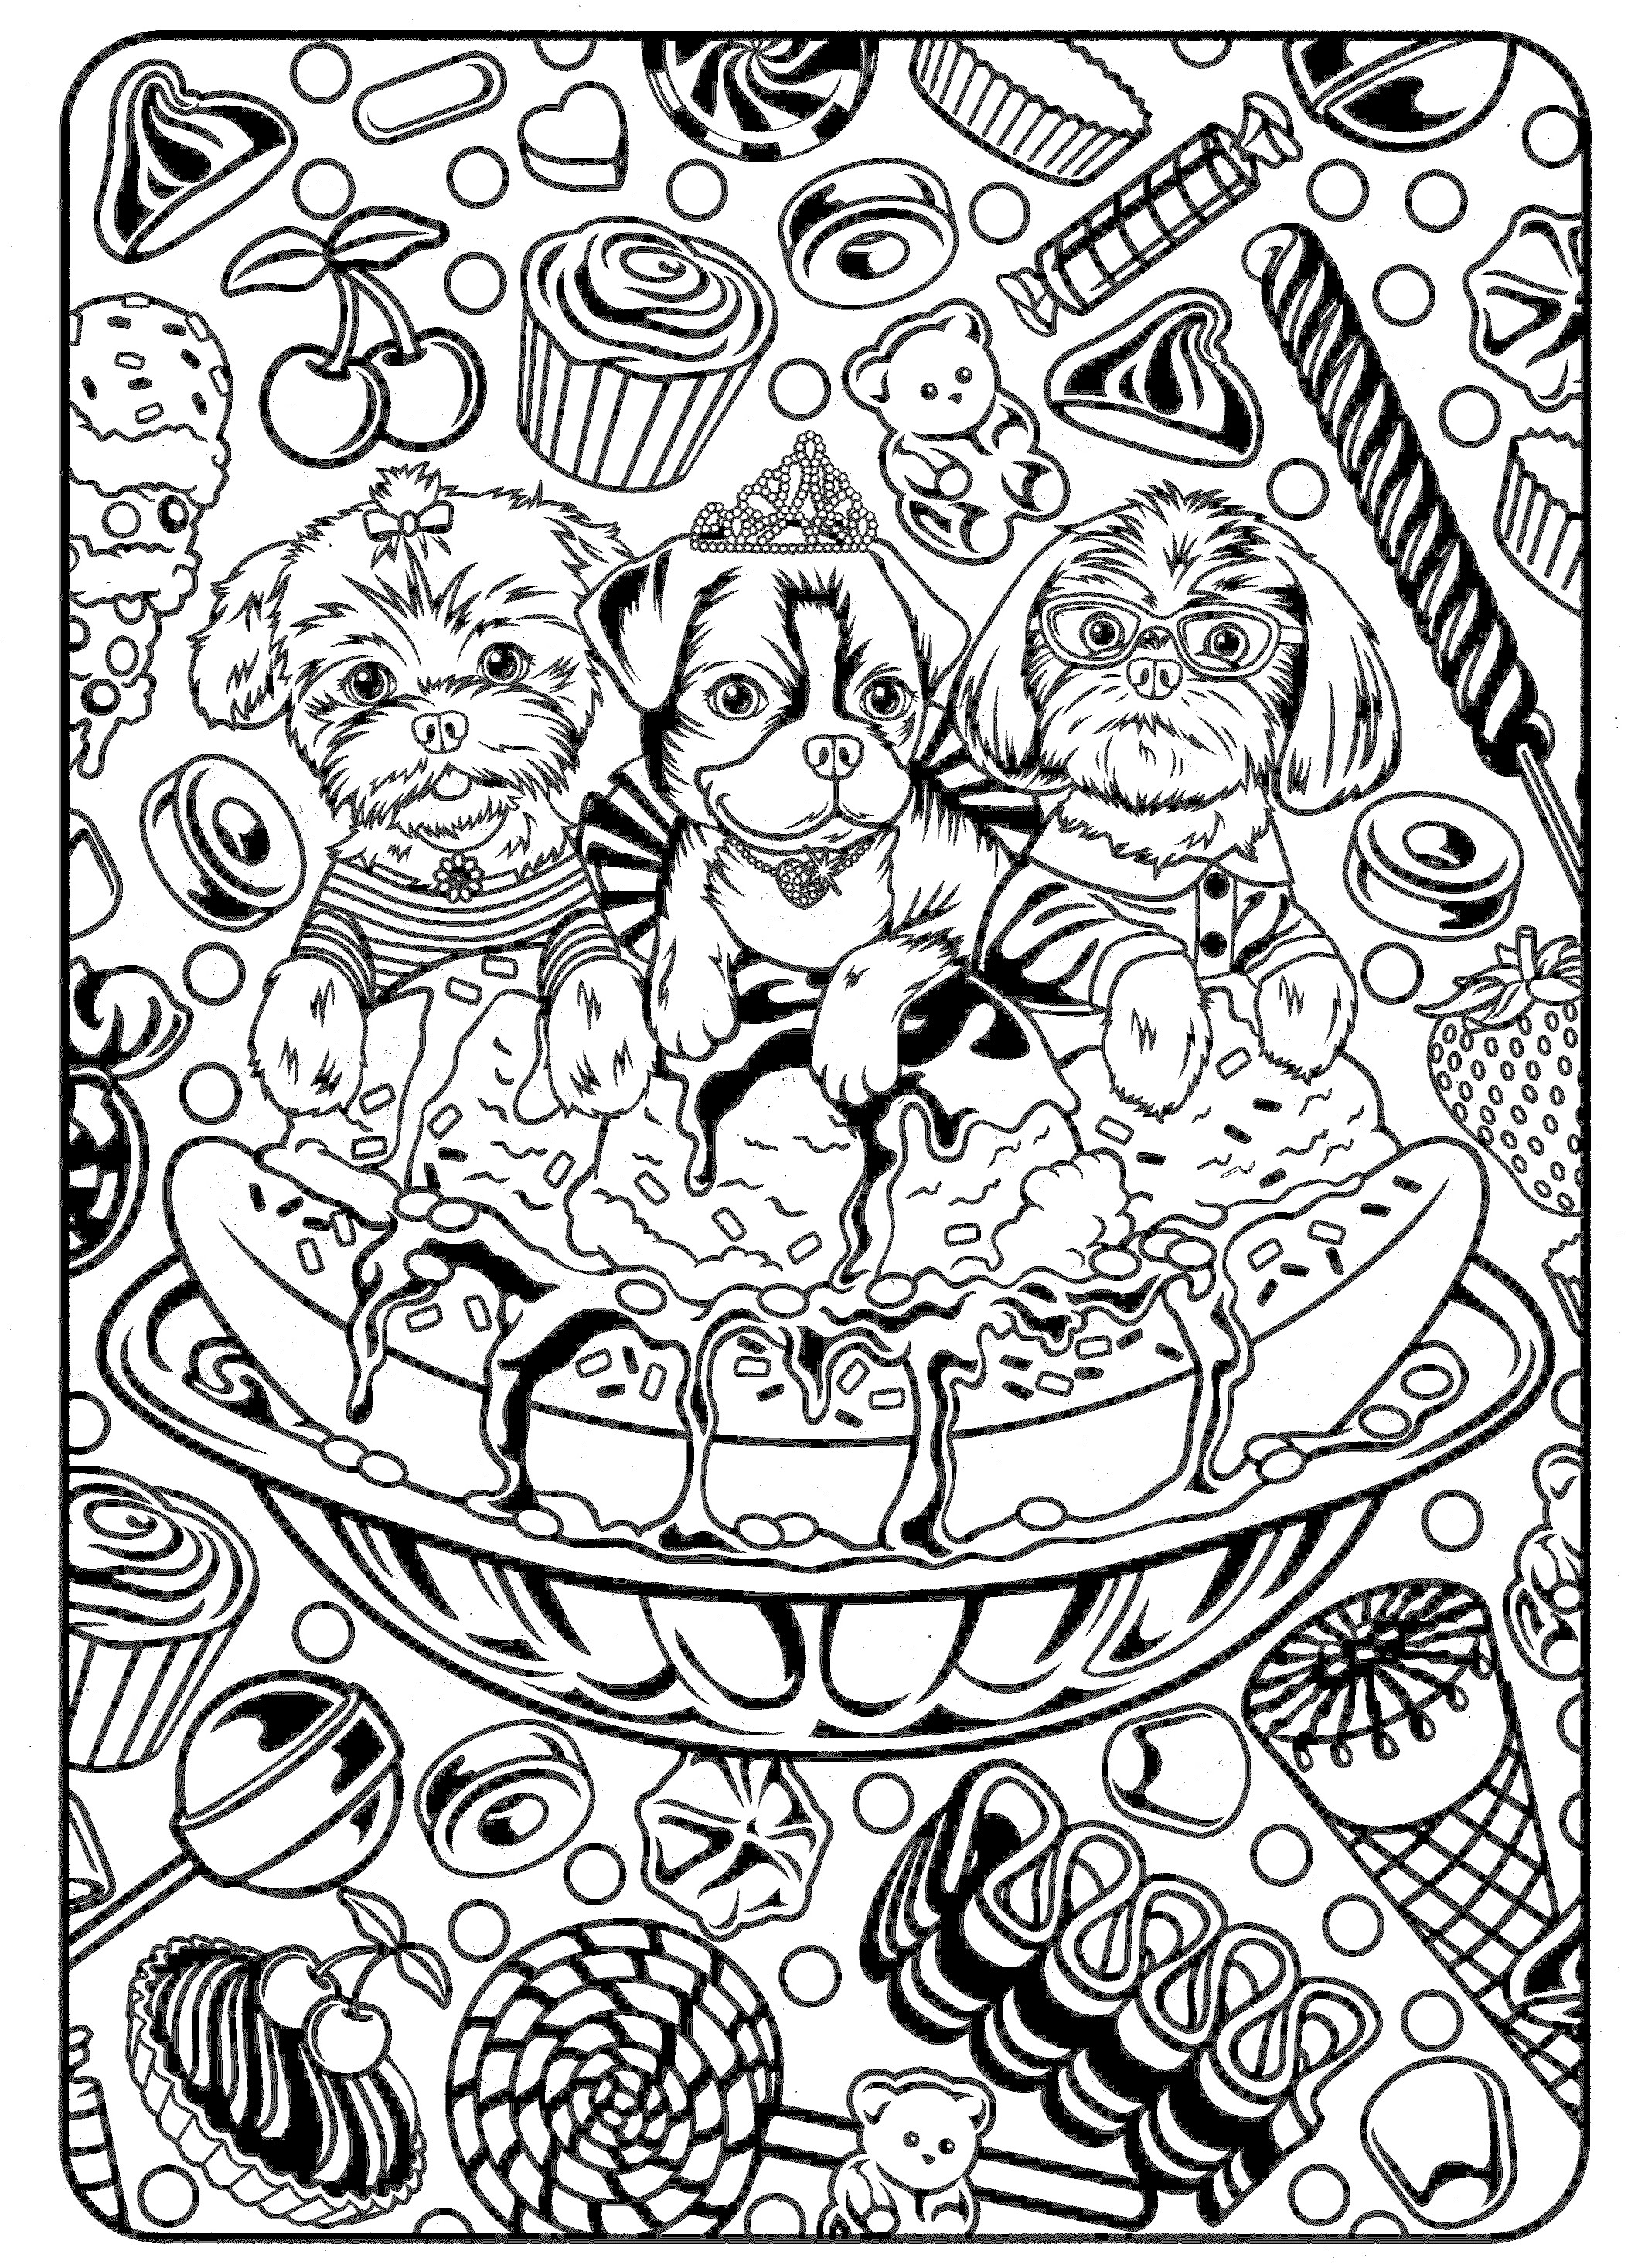 cool coloring pictures cool printable coloring pages for adults at getdrawings cool coloring pictures